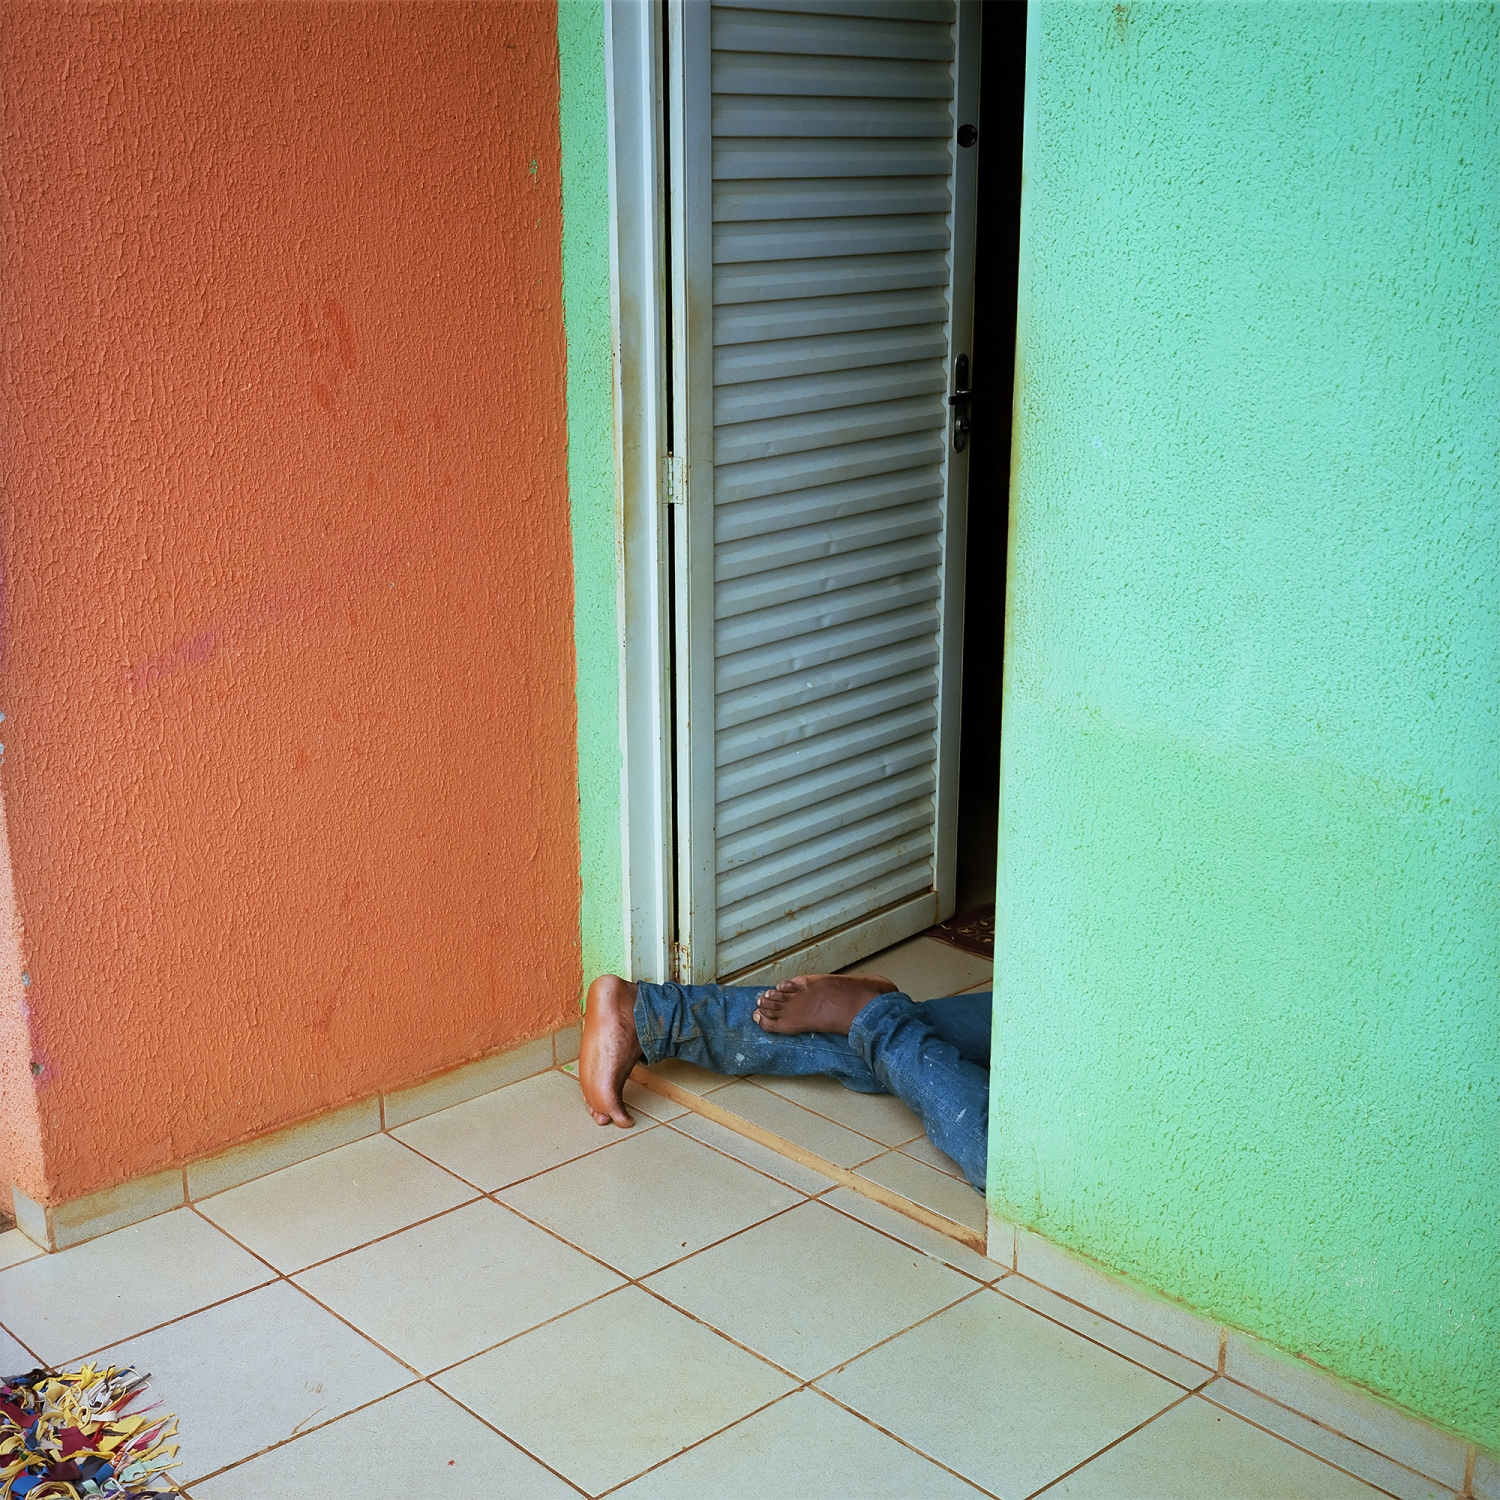 2016. A man sleeps in his doorway in the resettlment community of Jatoba. There are five communities such as this one around Altamira, each with identical housing build by Norte Energia. People who once lived on the rivers as fisherman have been relocated here where there is little employment, and the neighbours are strangers. Crime, violence and alcholism have become major problems in the communities.